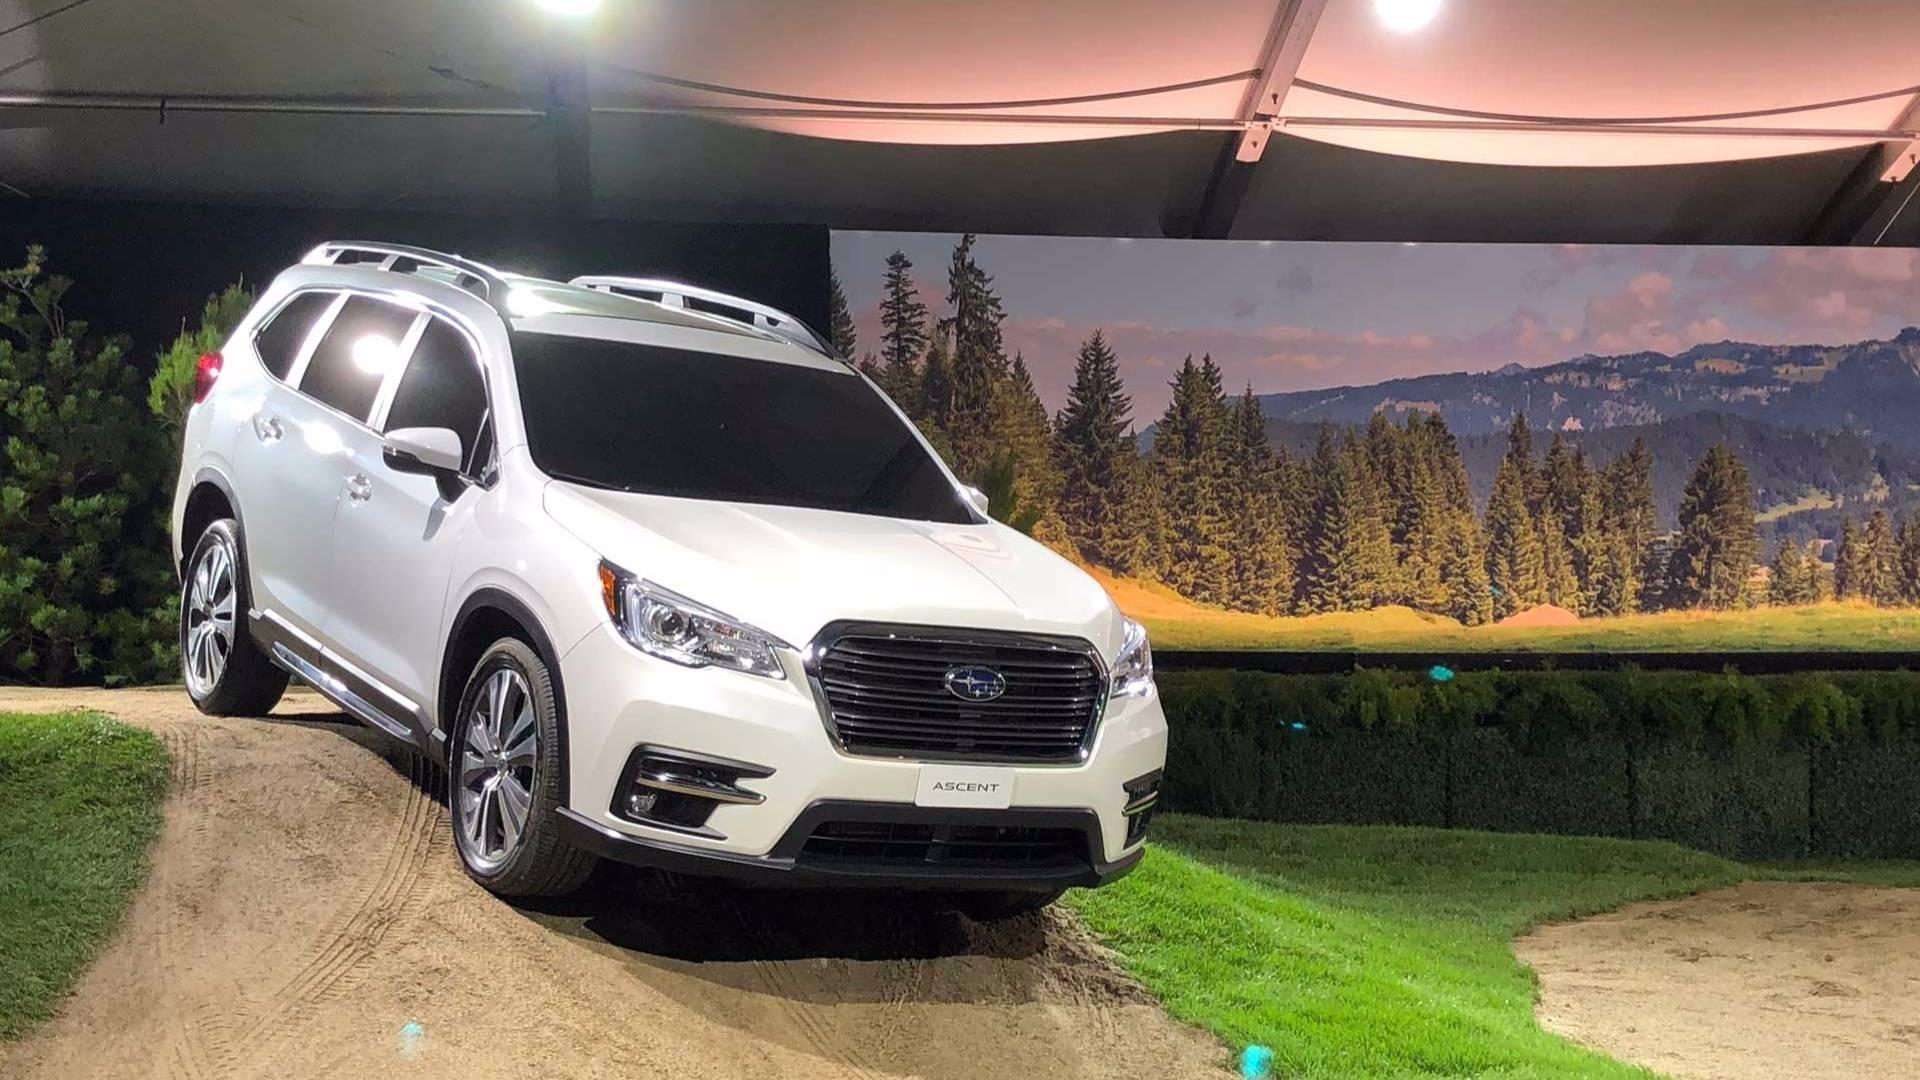 2019 Subaru Ascent Arrives With New Turbo Engine Seating For 8 Outback Intercooler Diagram